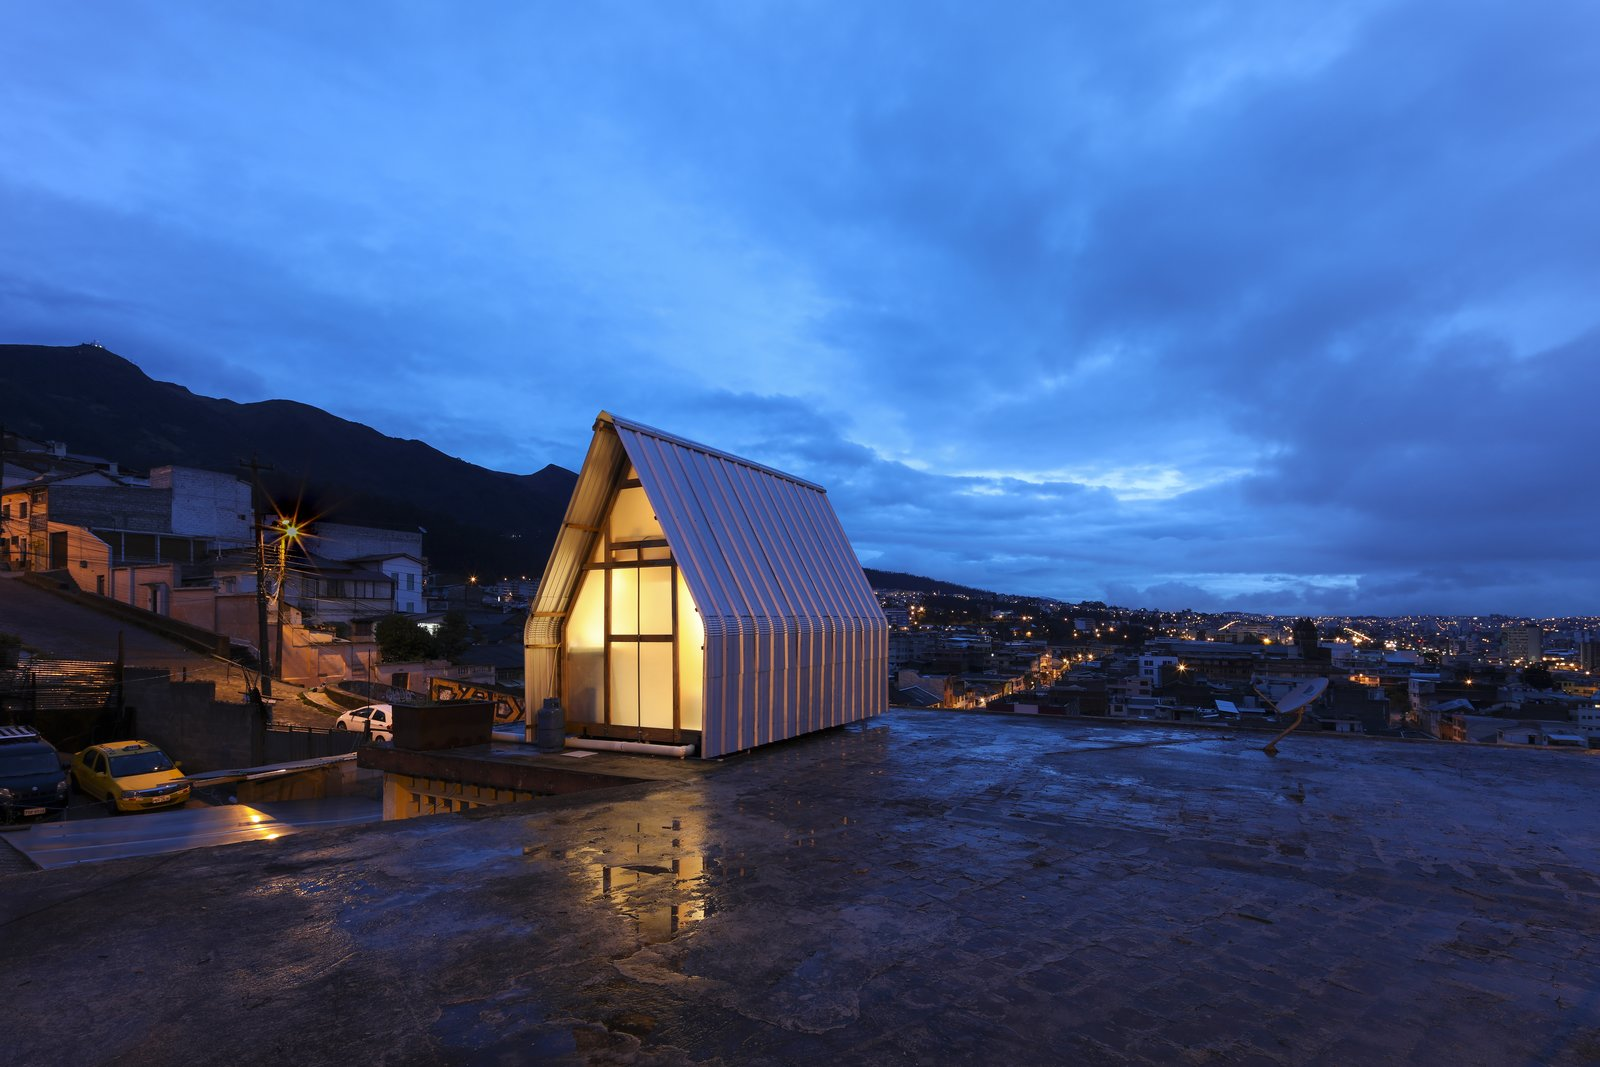 Exterior, House Building Type, A-Frame RoofLine, Metal Roof Material, Glass Siding Material, Wood Siding Material, Gable RoofLine, Metal Siding Material, and Tiny Home Building Type  Best Photos from This Tiny $11K Apartment Adds Affordable Housing to High-Rise Rooftops